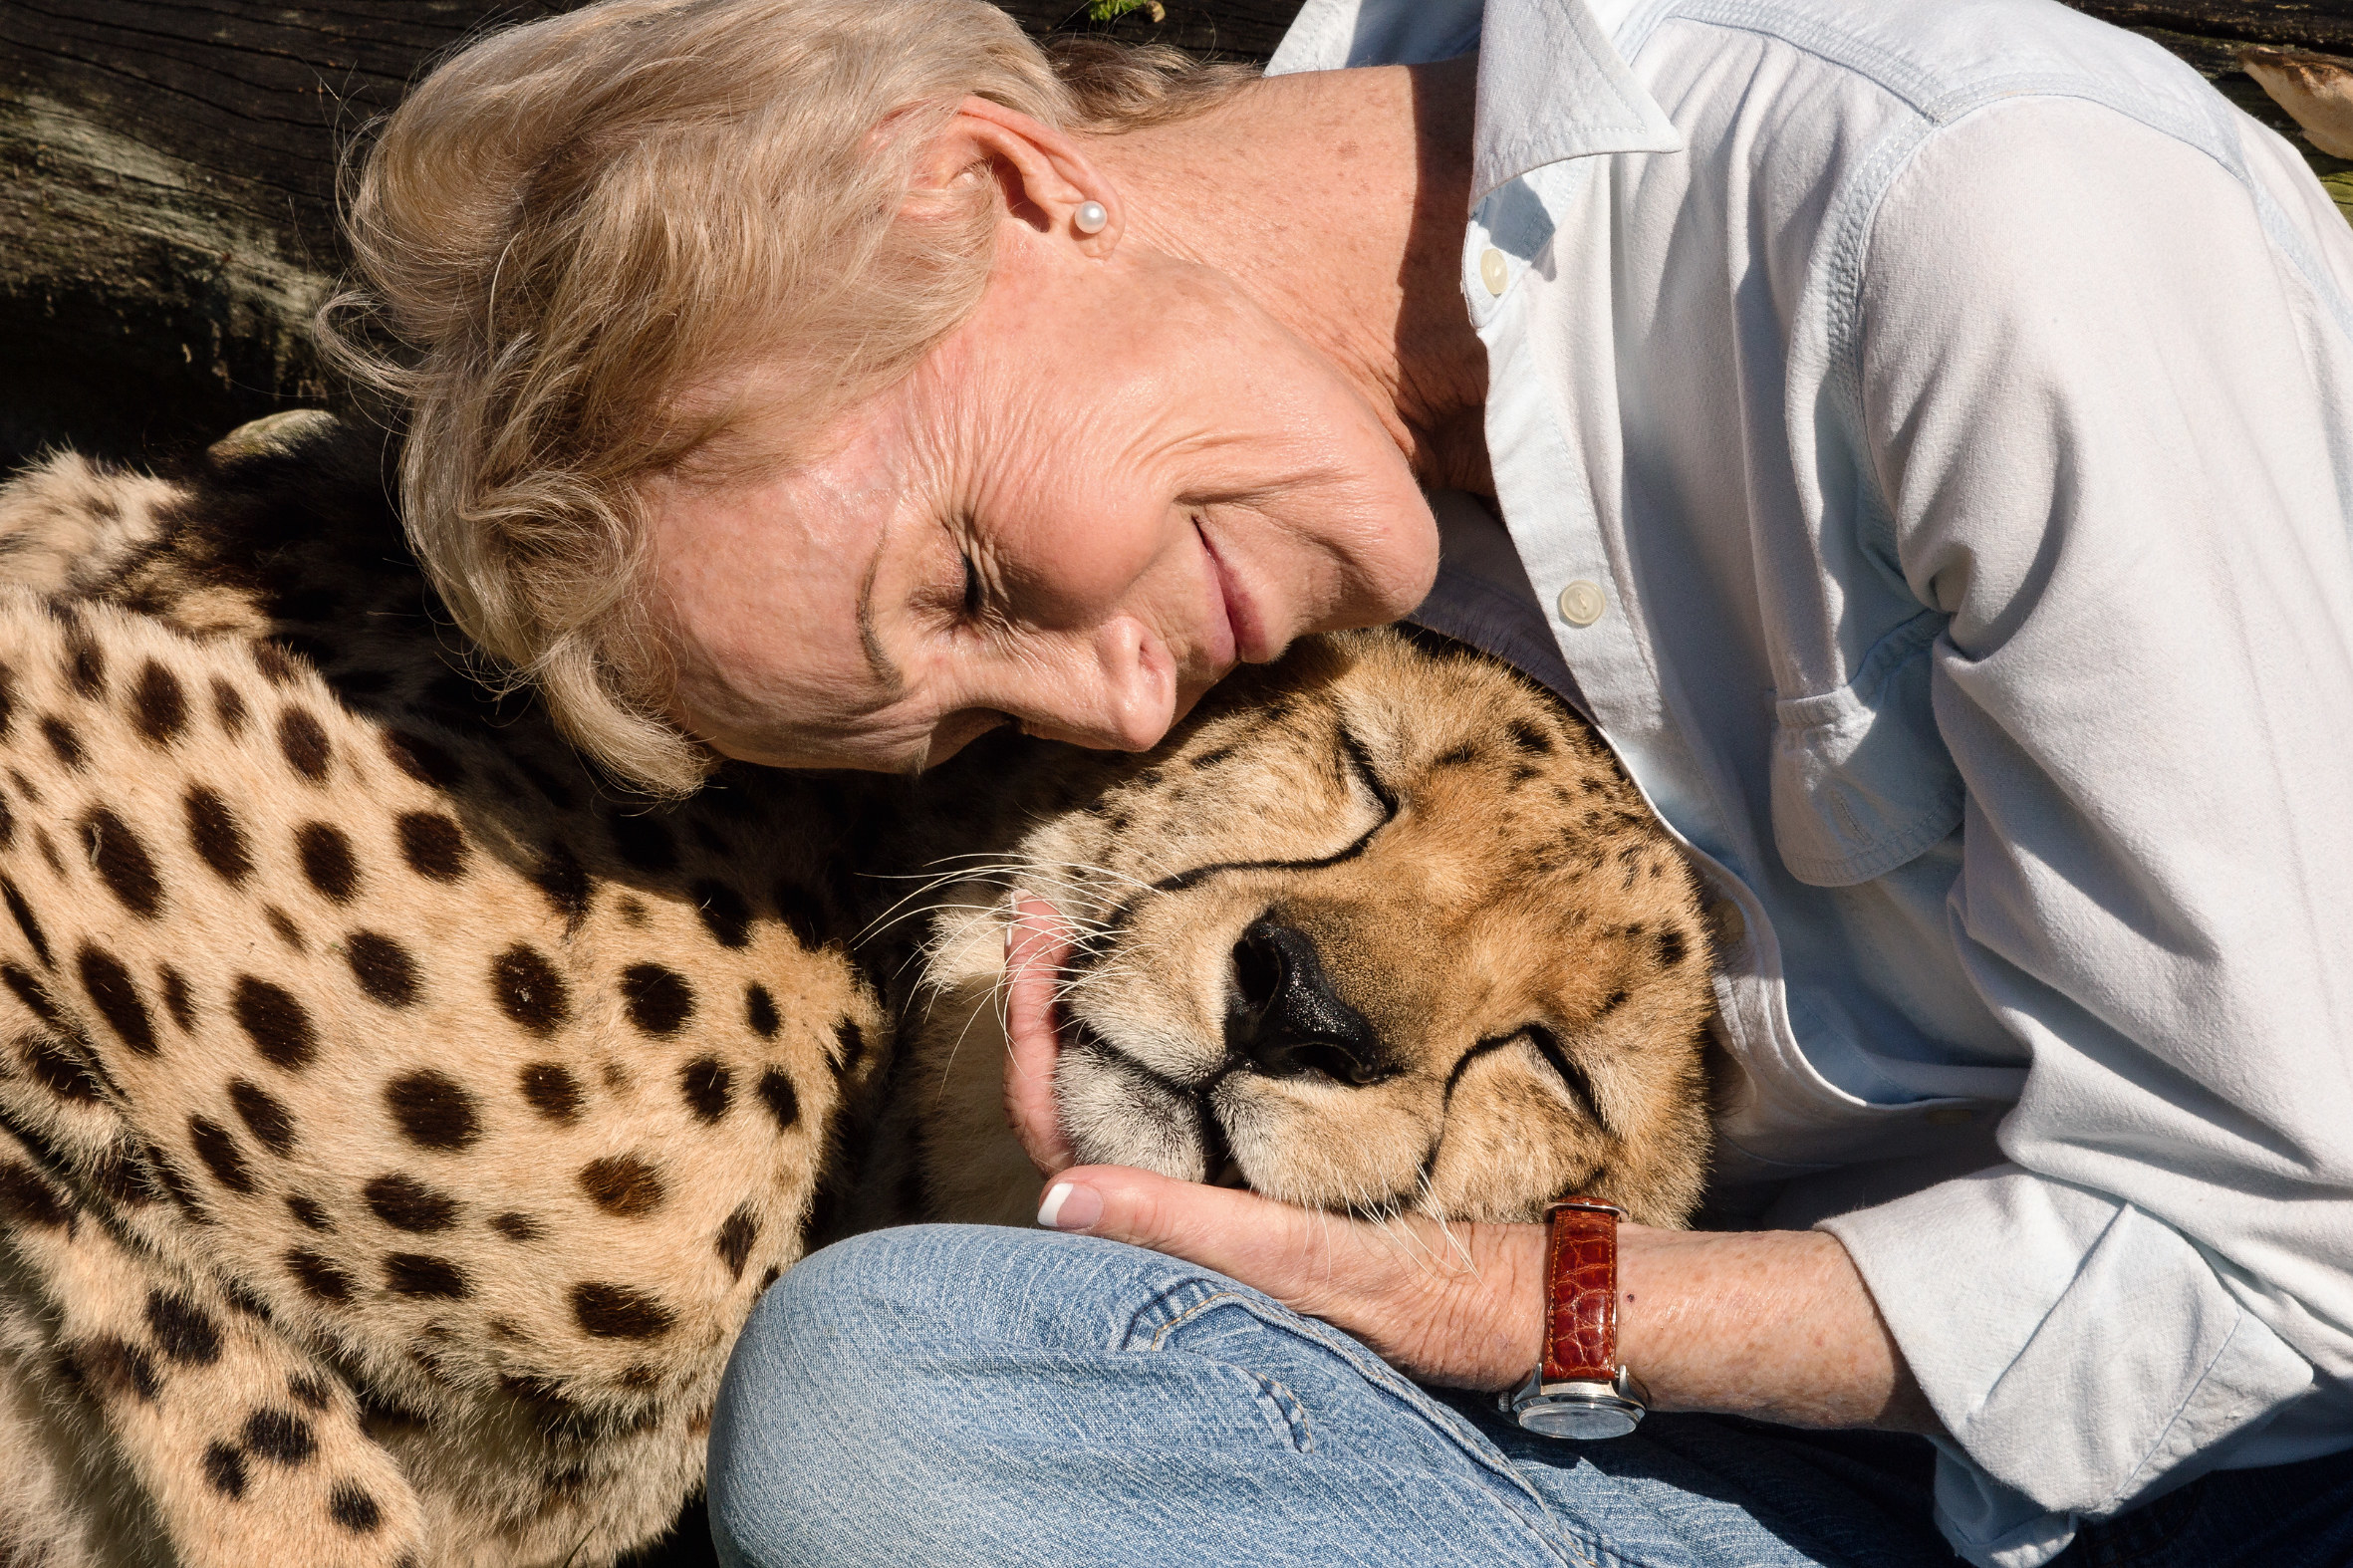 A woman rests her head on a cheetah's head